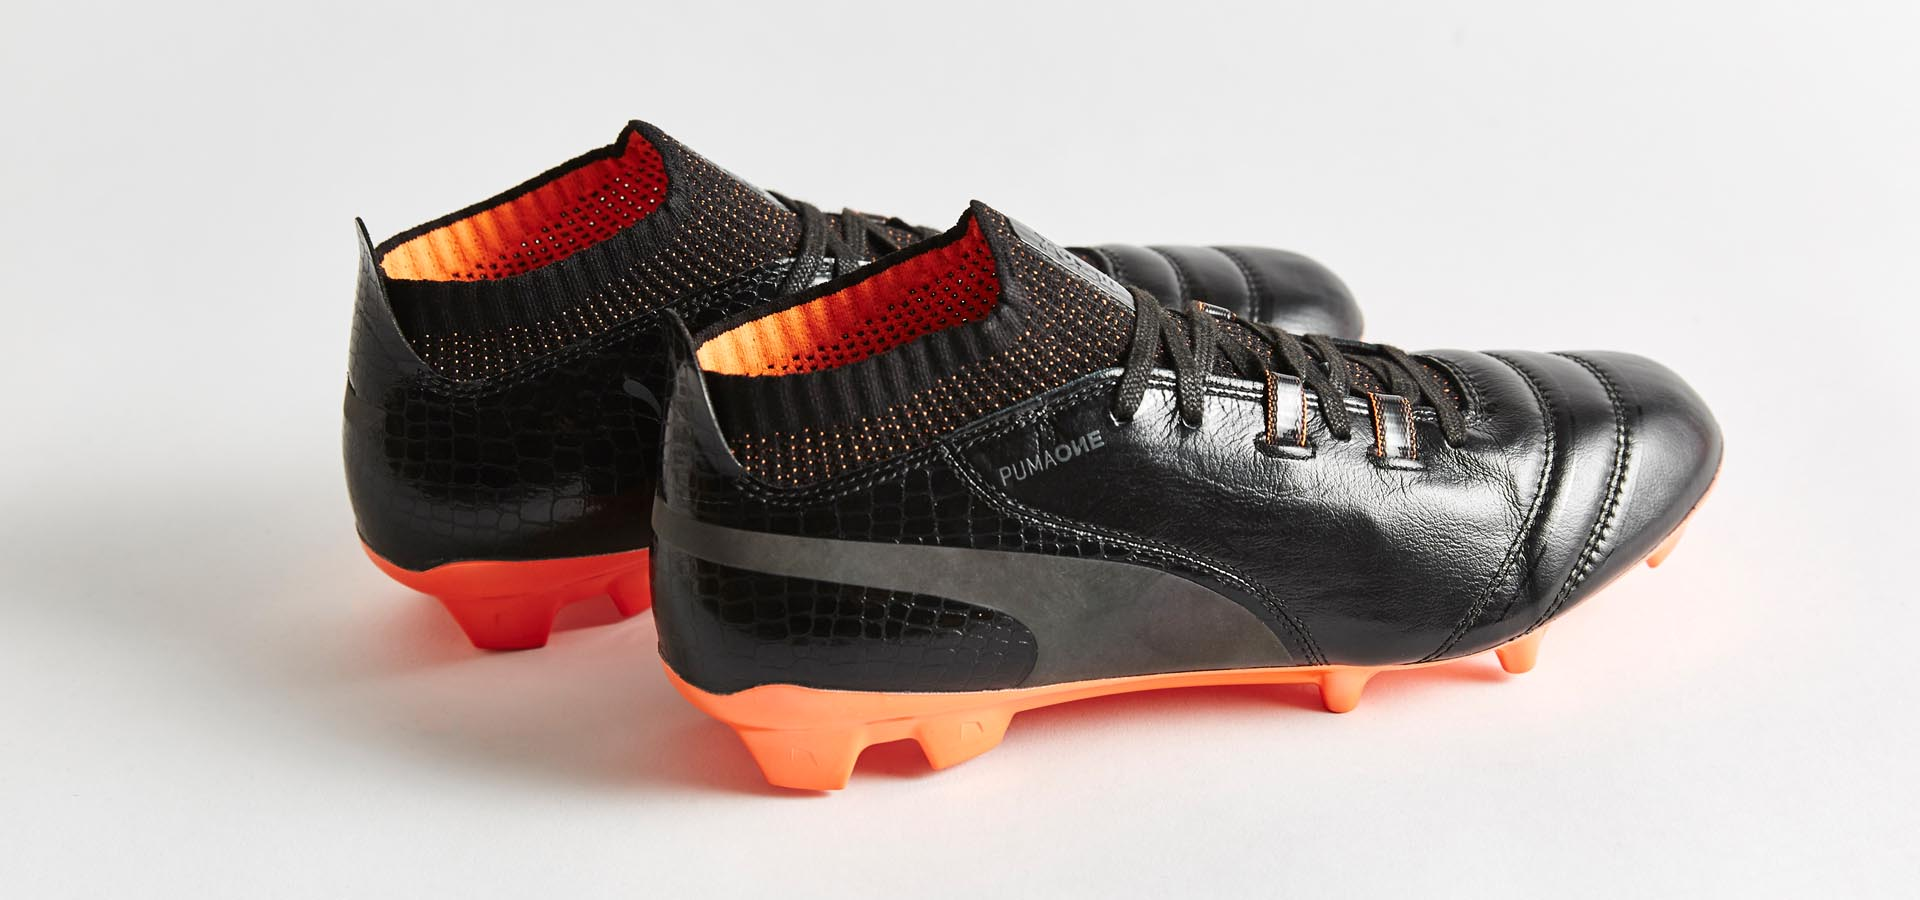 593c40306 PUMA have taken the best attributes frothier previous evoSPEED and evoTOUCH  silos and whipped up a boot that covers all the key needs for a player. The  One ...